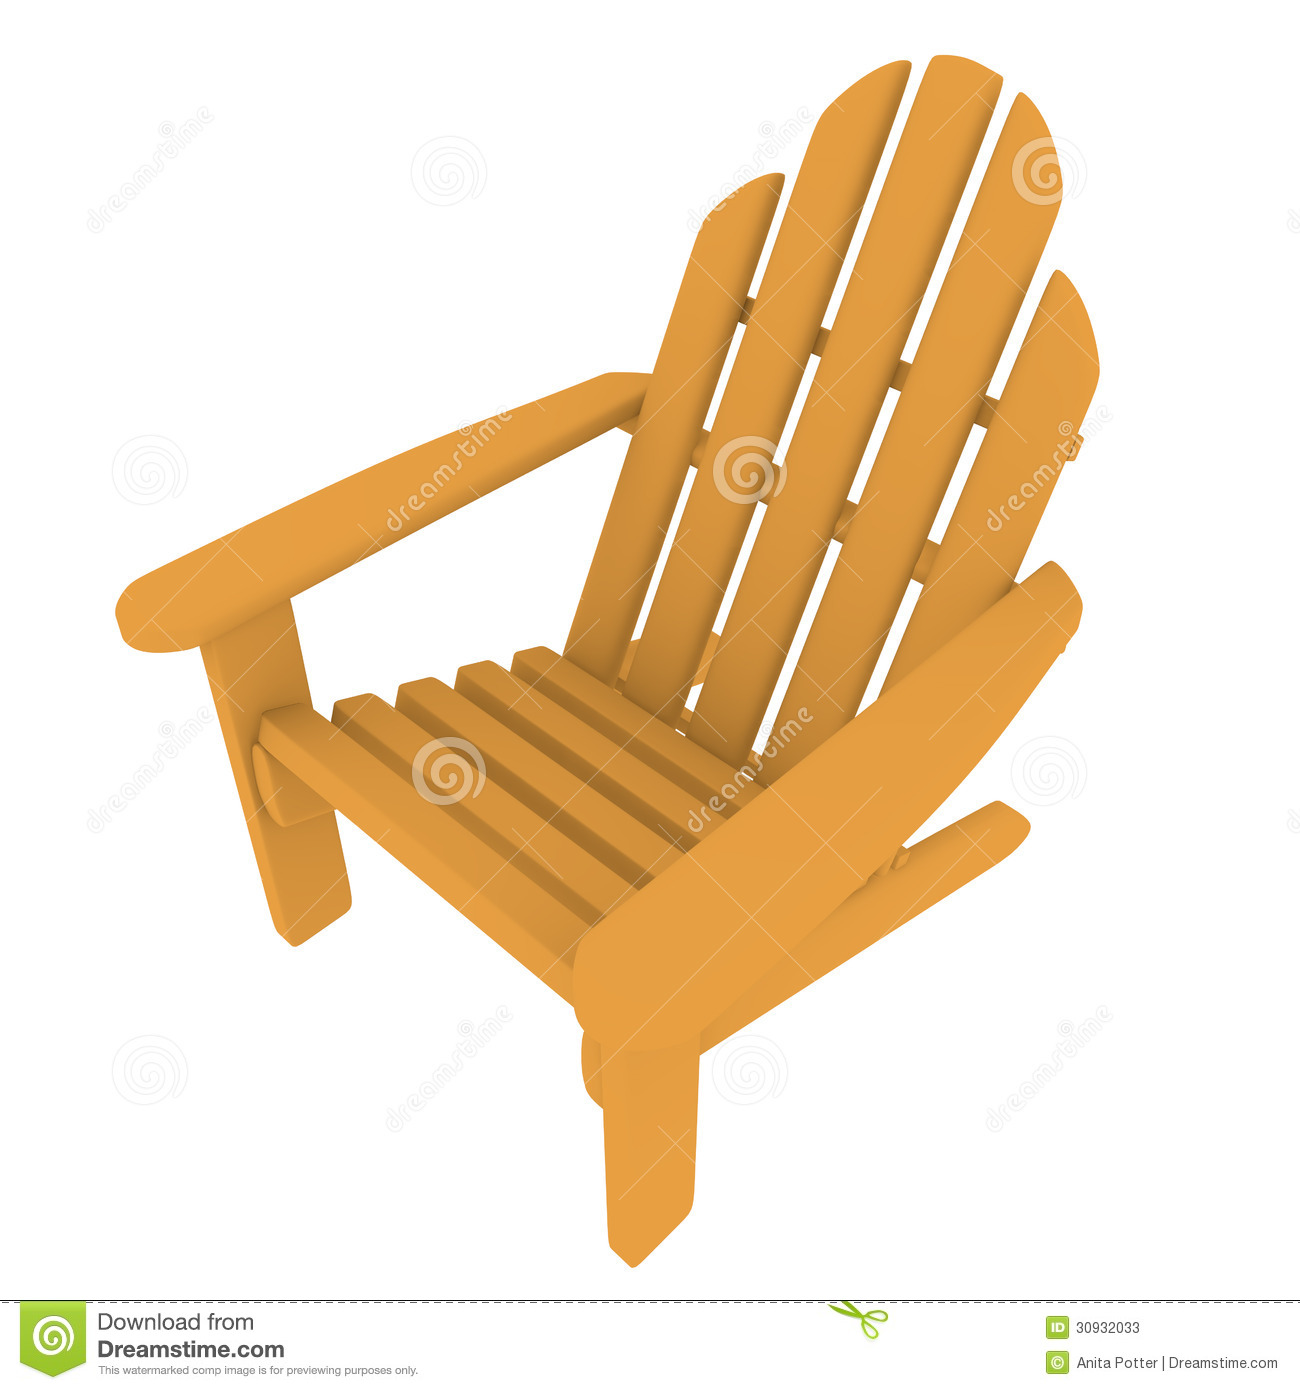 3d Render Of An Adirondack Chair Stock Illustration